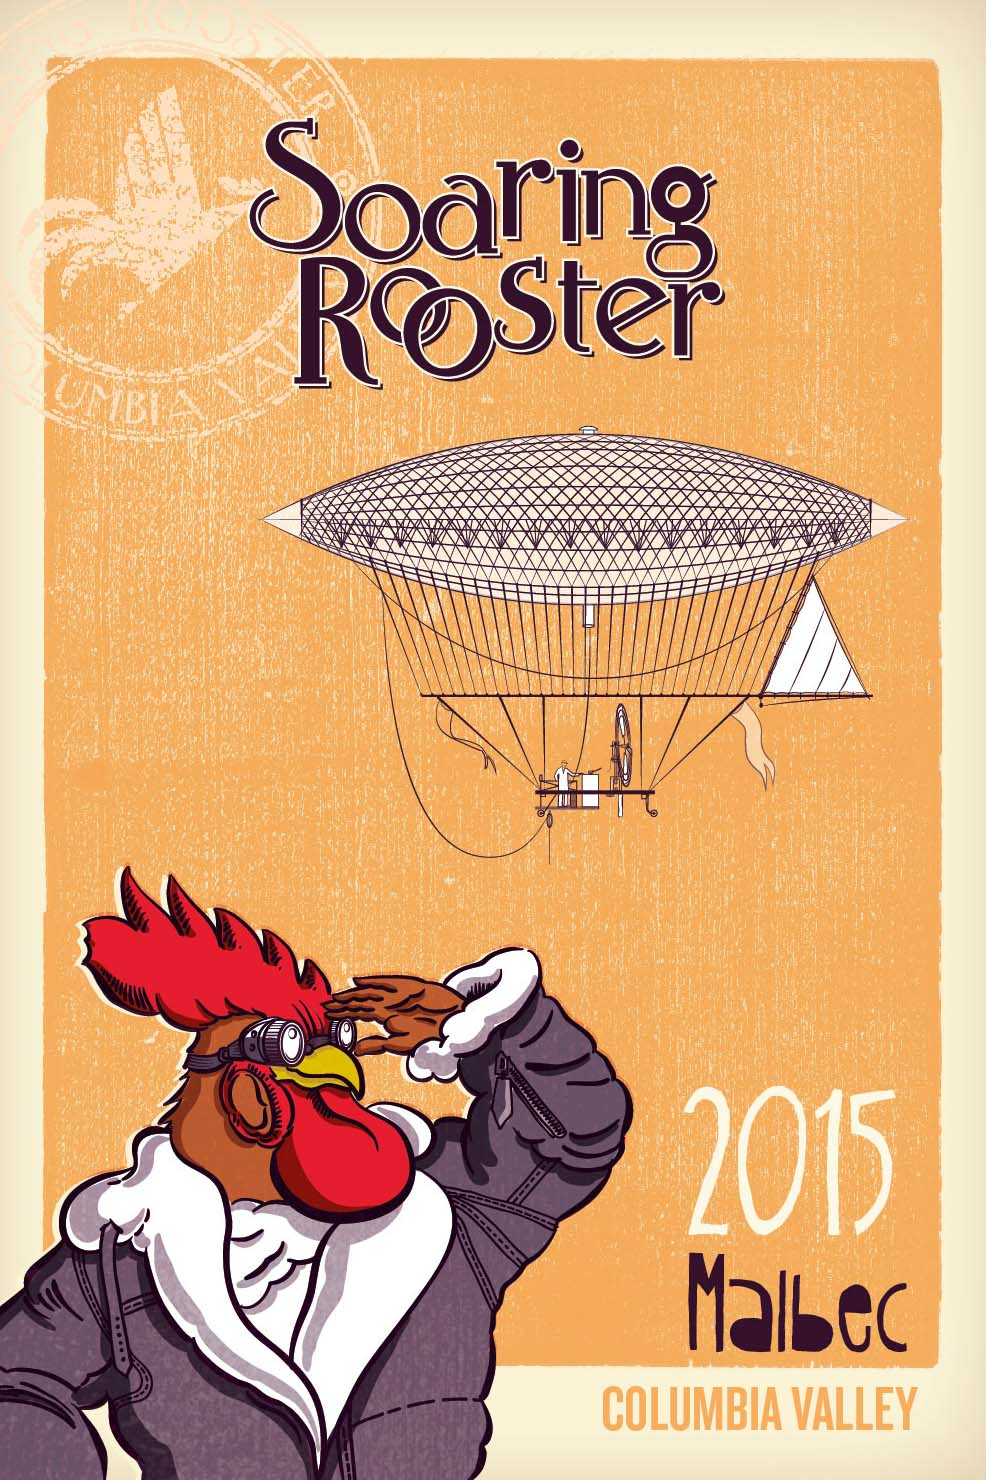 2015 Soaring Rooster Malbec THUMBNAIL